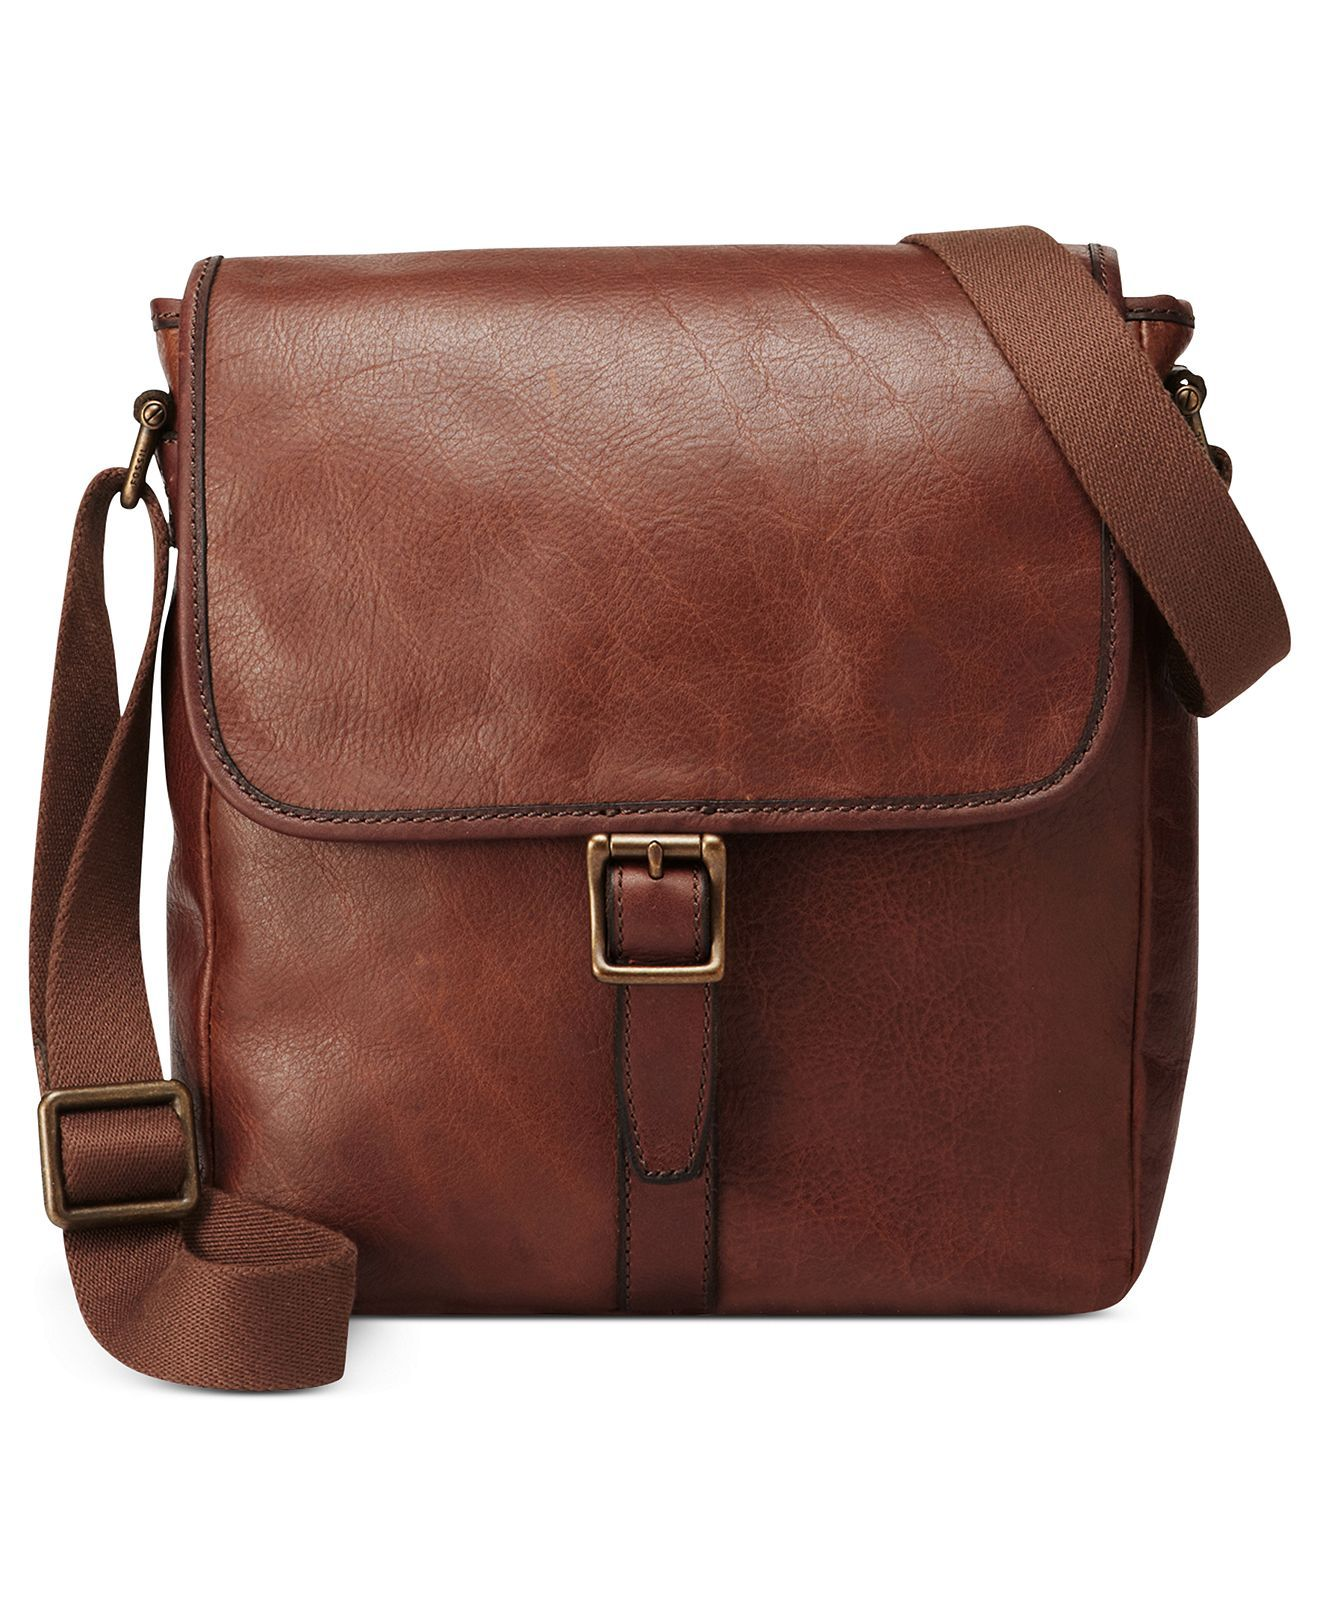 BeltsWallets BagsEstate Fossil South North Bag City N8wOZ0kXPn